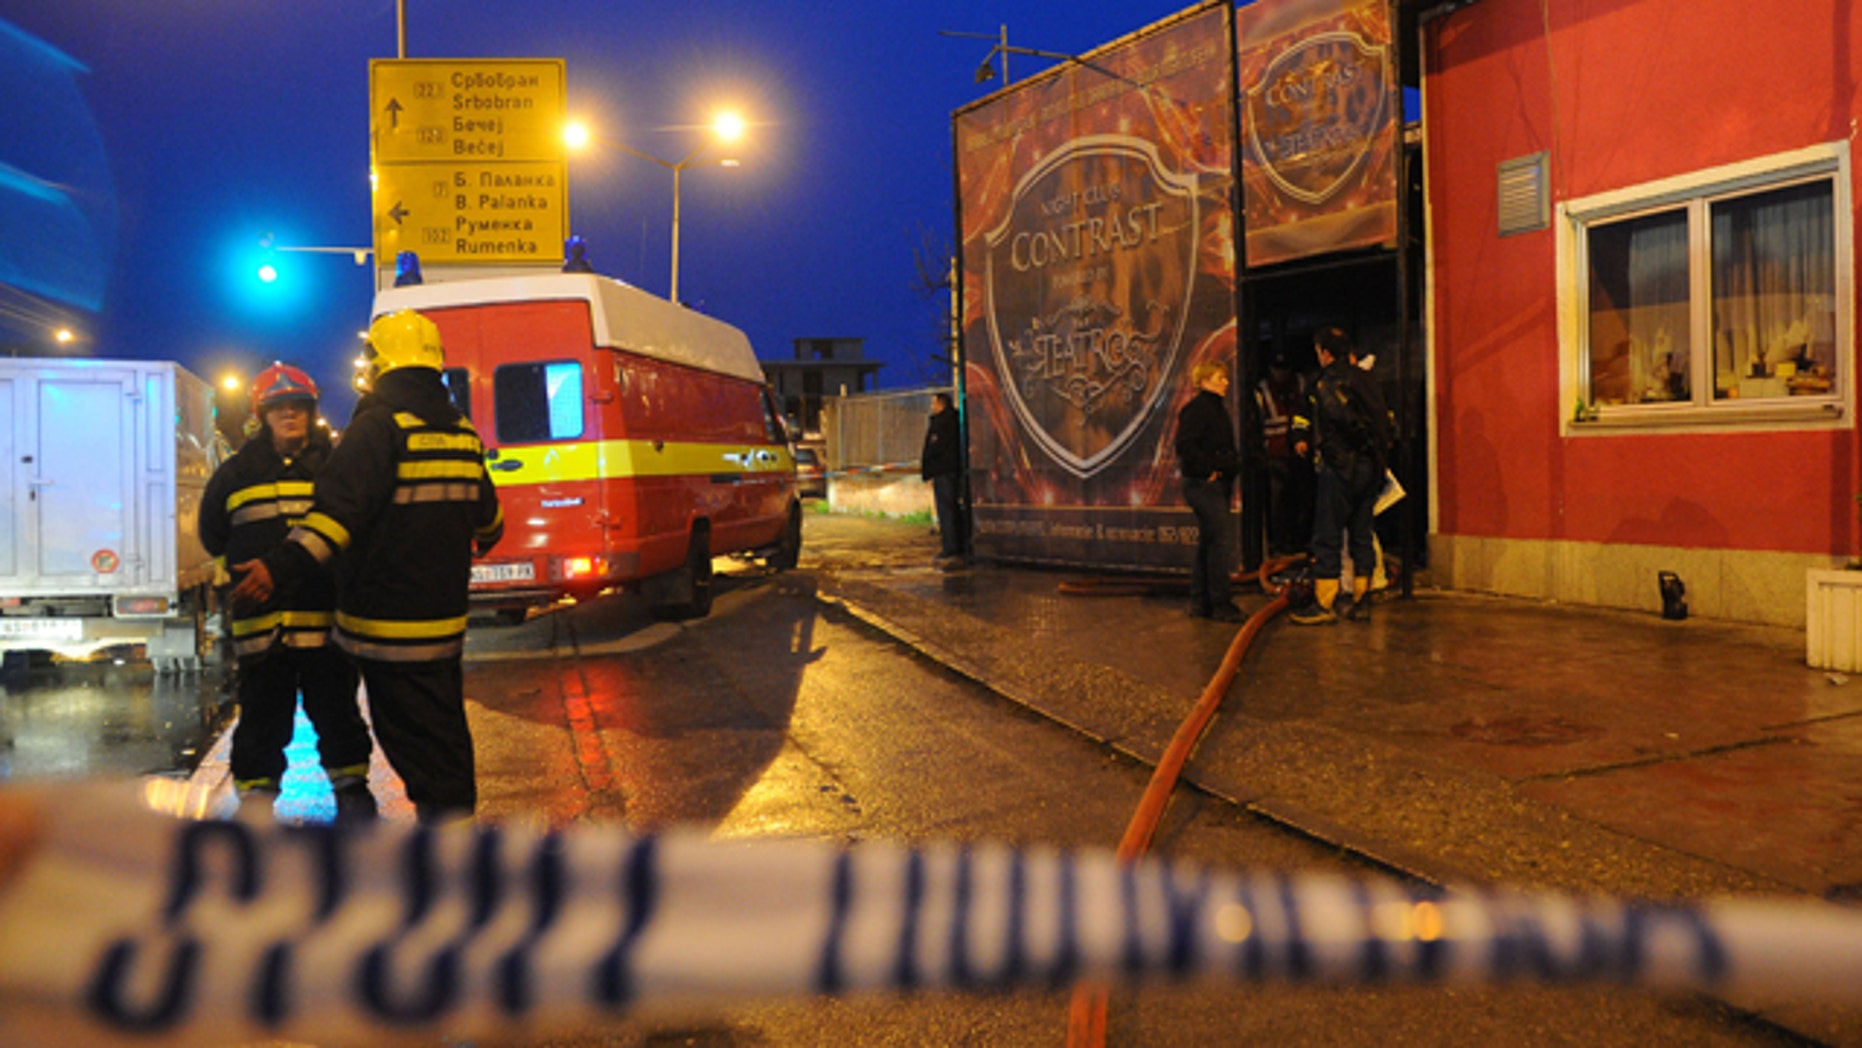 April 1, 2012: Firefighters stand in front of the nightclub Contrast in Novi Sad, Serbia.